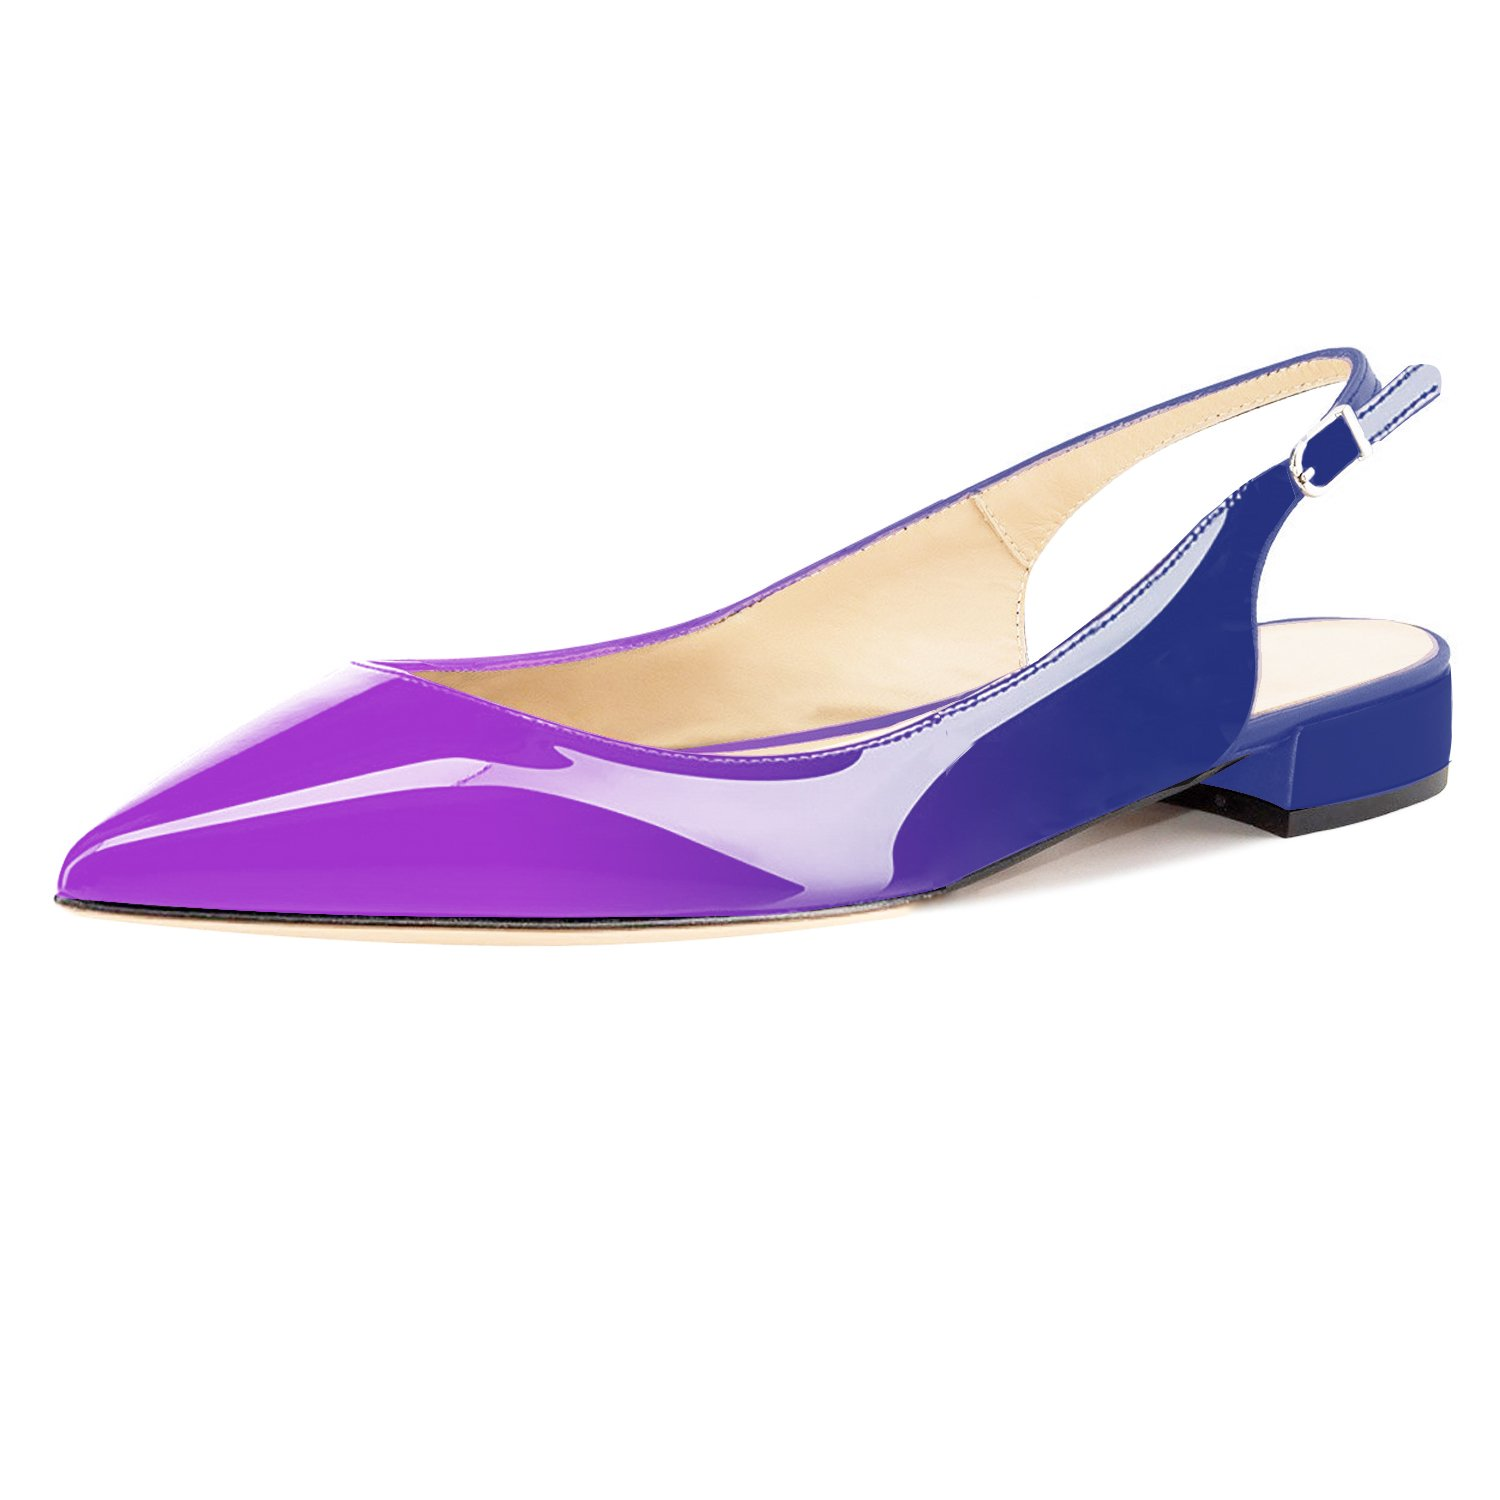 Eldof Women Low Heels Pumps | Pointed Toe Slingback Flat Pumps | 2cm Classic Elegante Court Shoes B07CG77MJB 10.5 B(M) US|Purple-blue